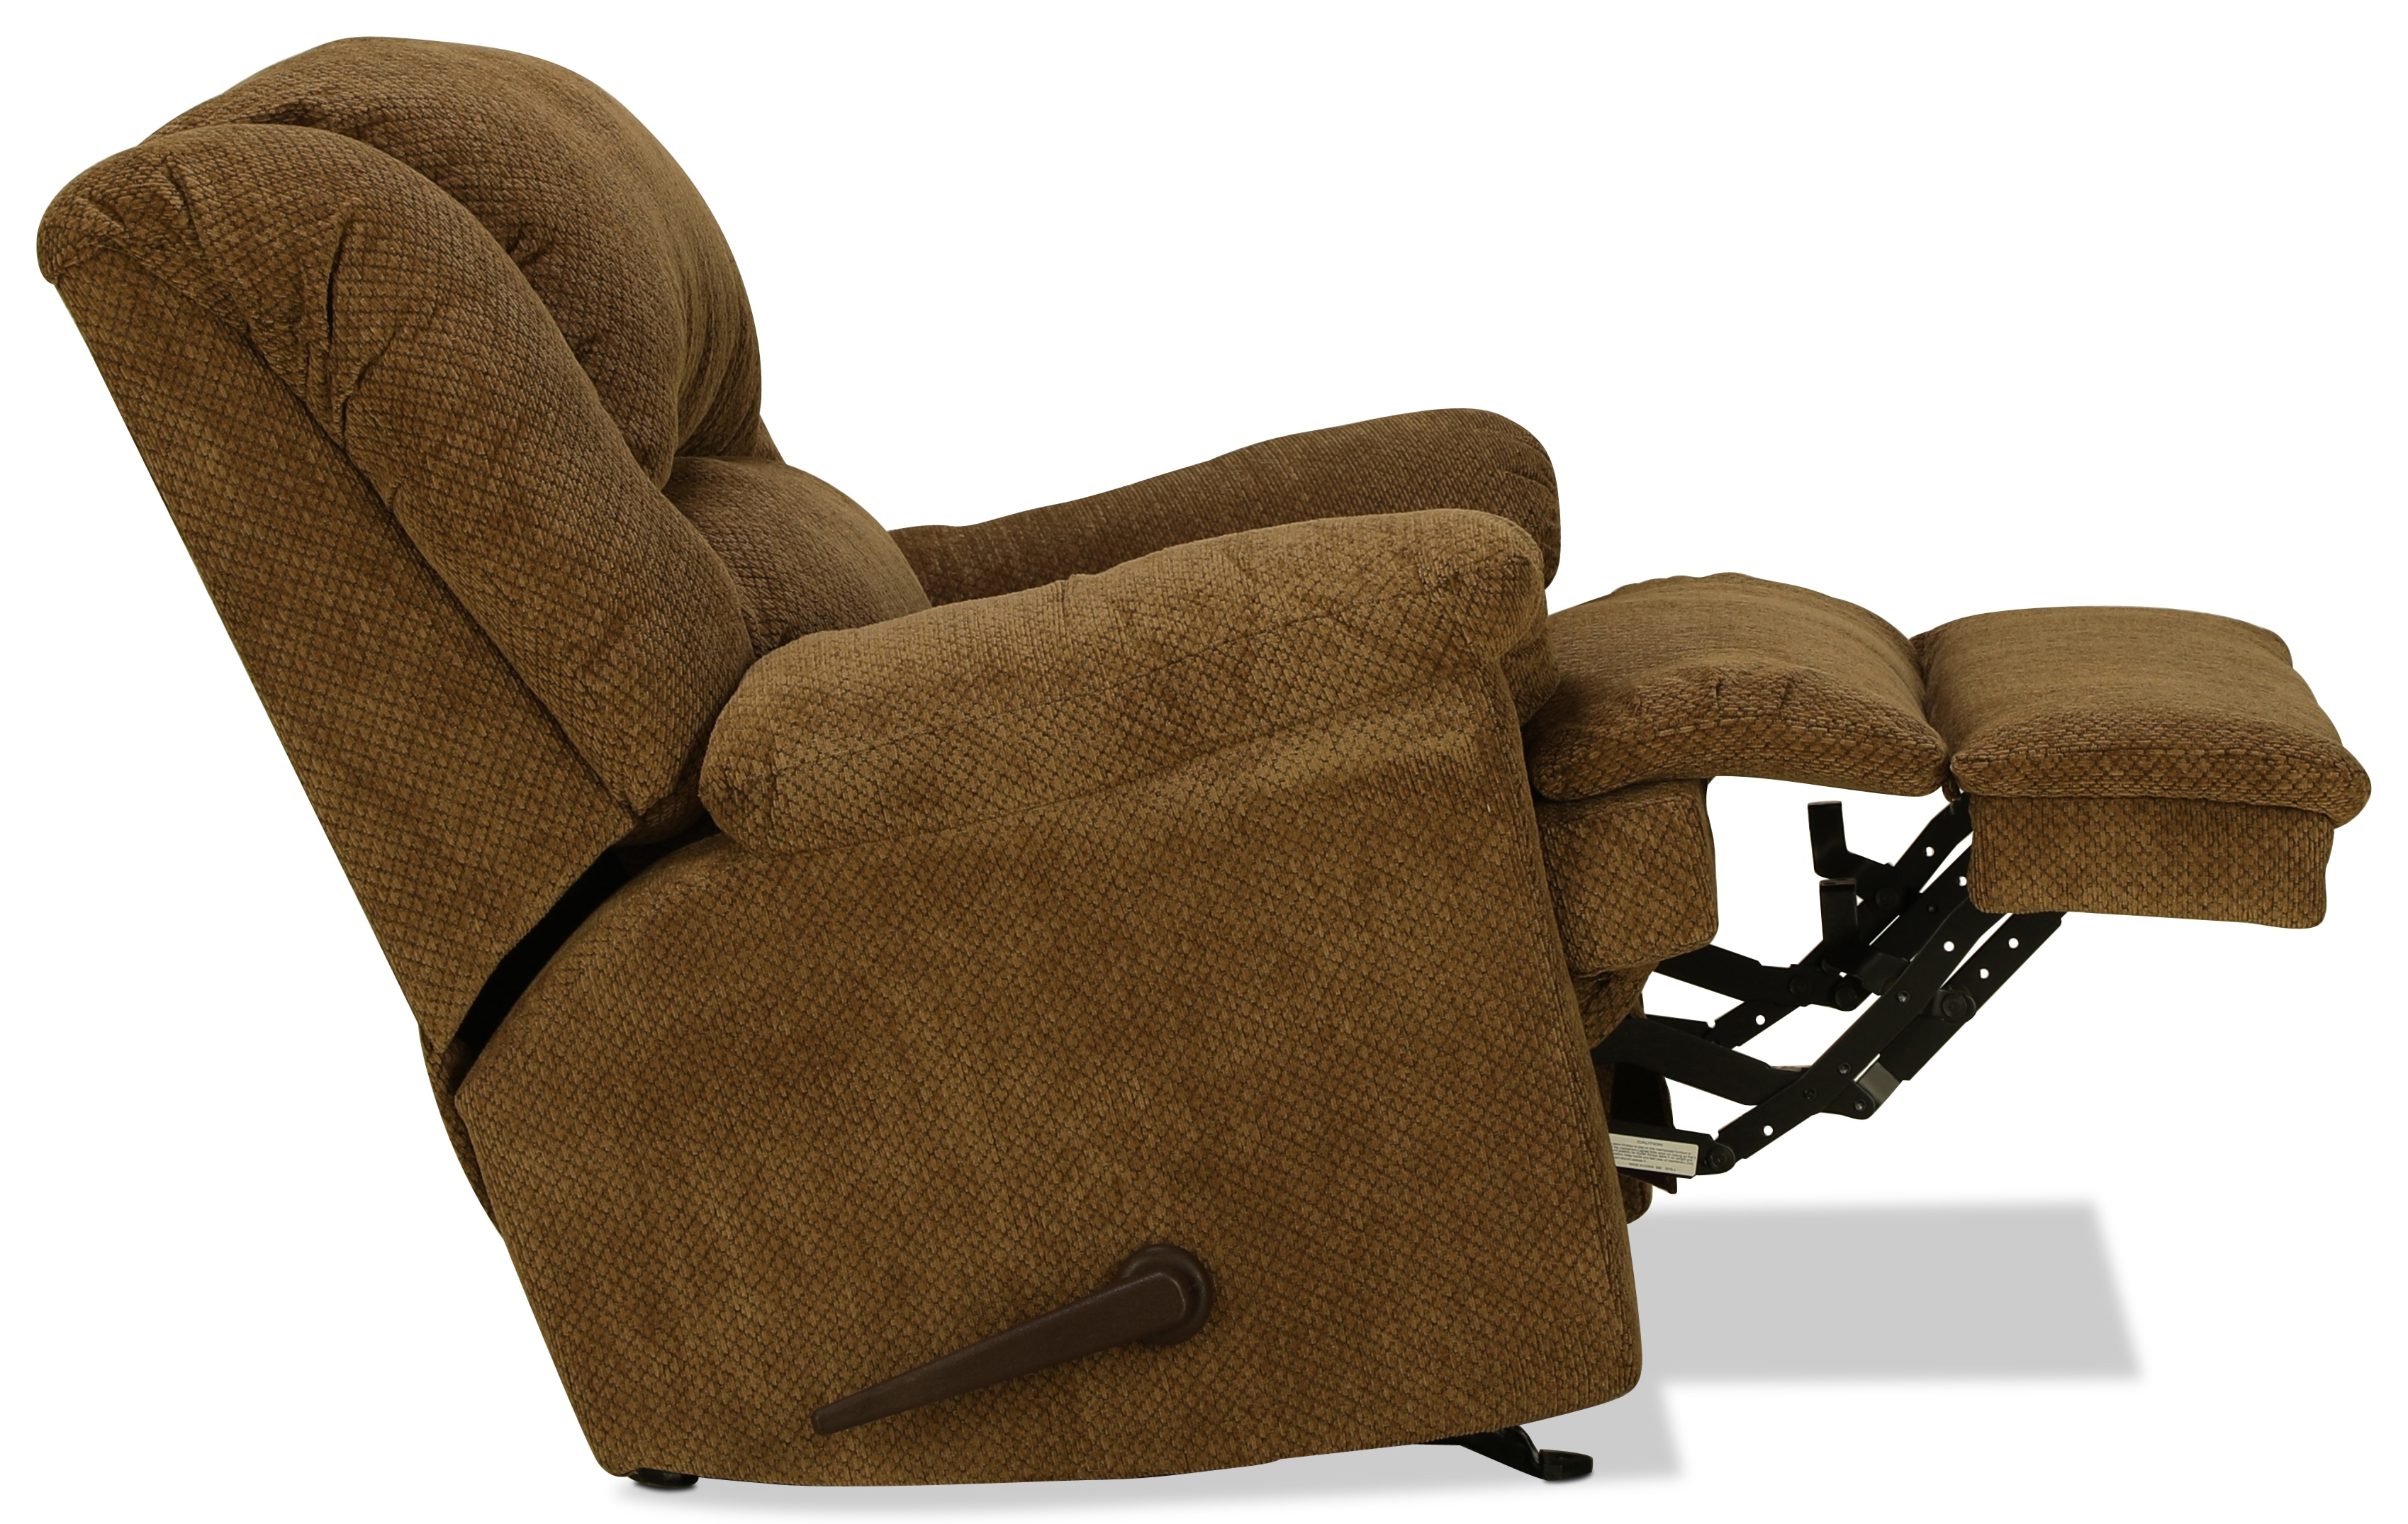 Decker Rocker Recliner - Mocha | inside Decker Ii Fabric Swivel Glider Recliners